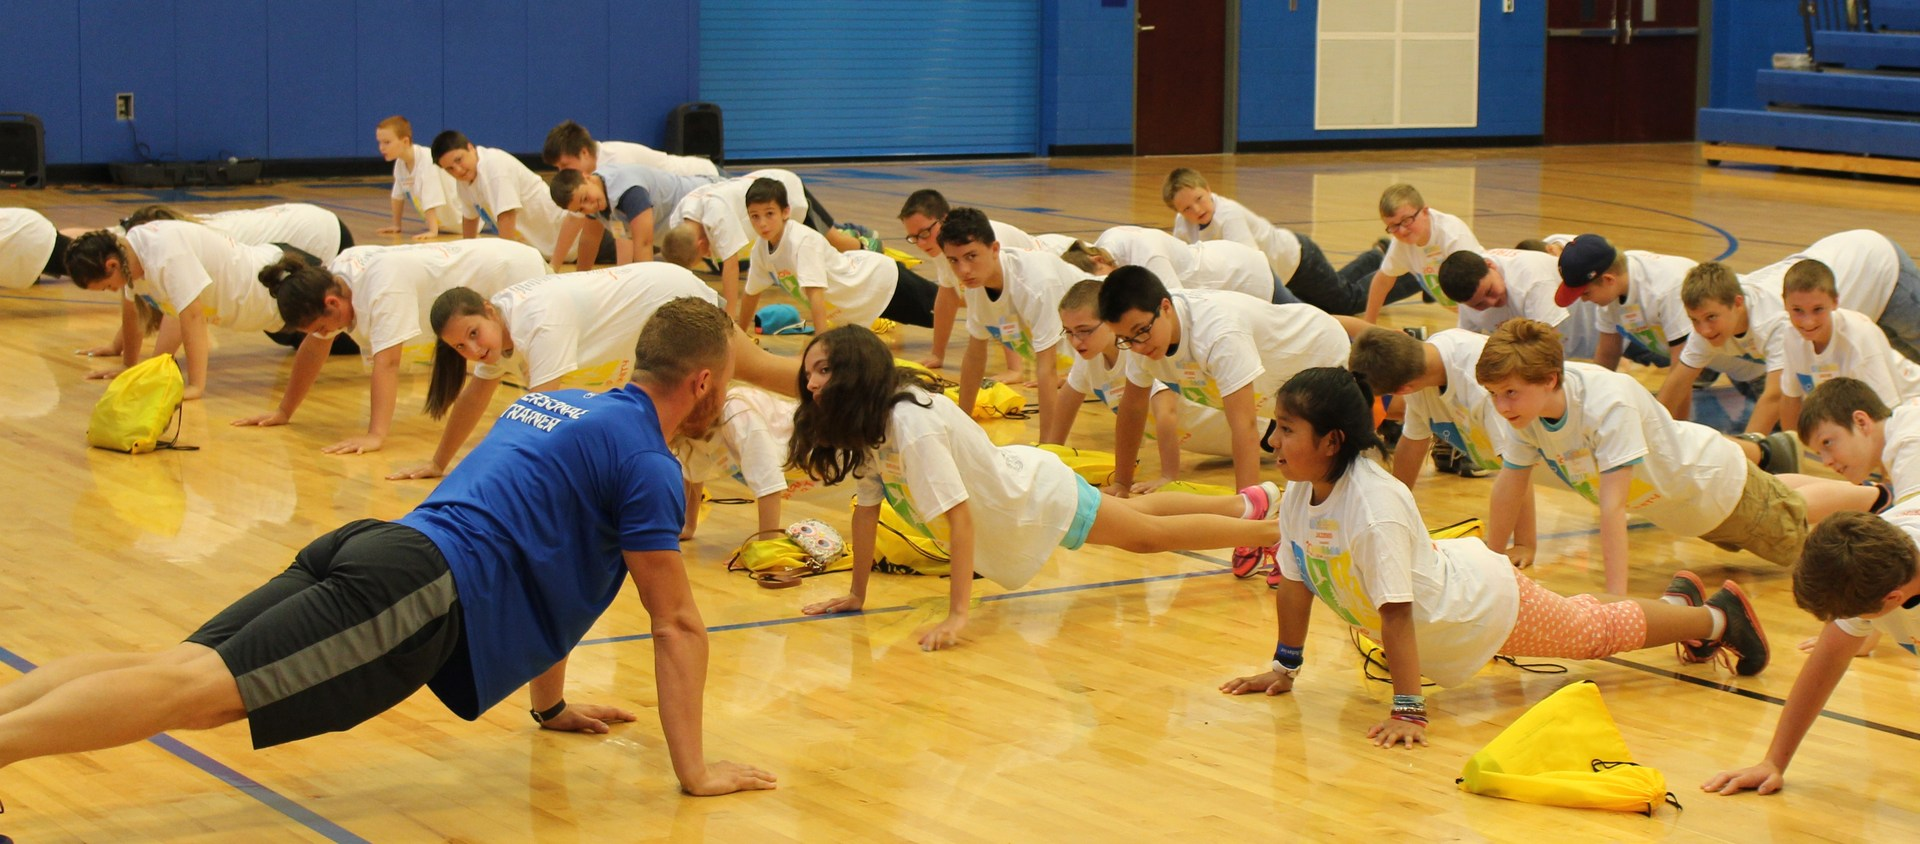 Students participating in fitness activities